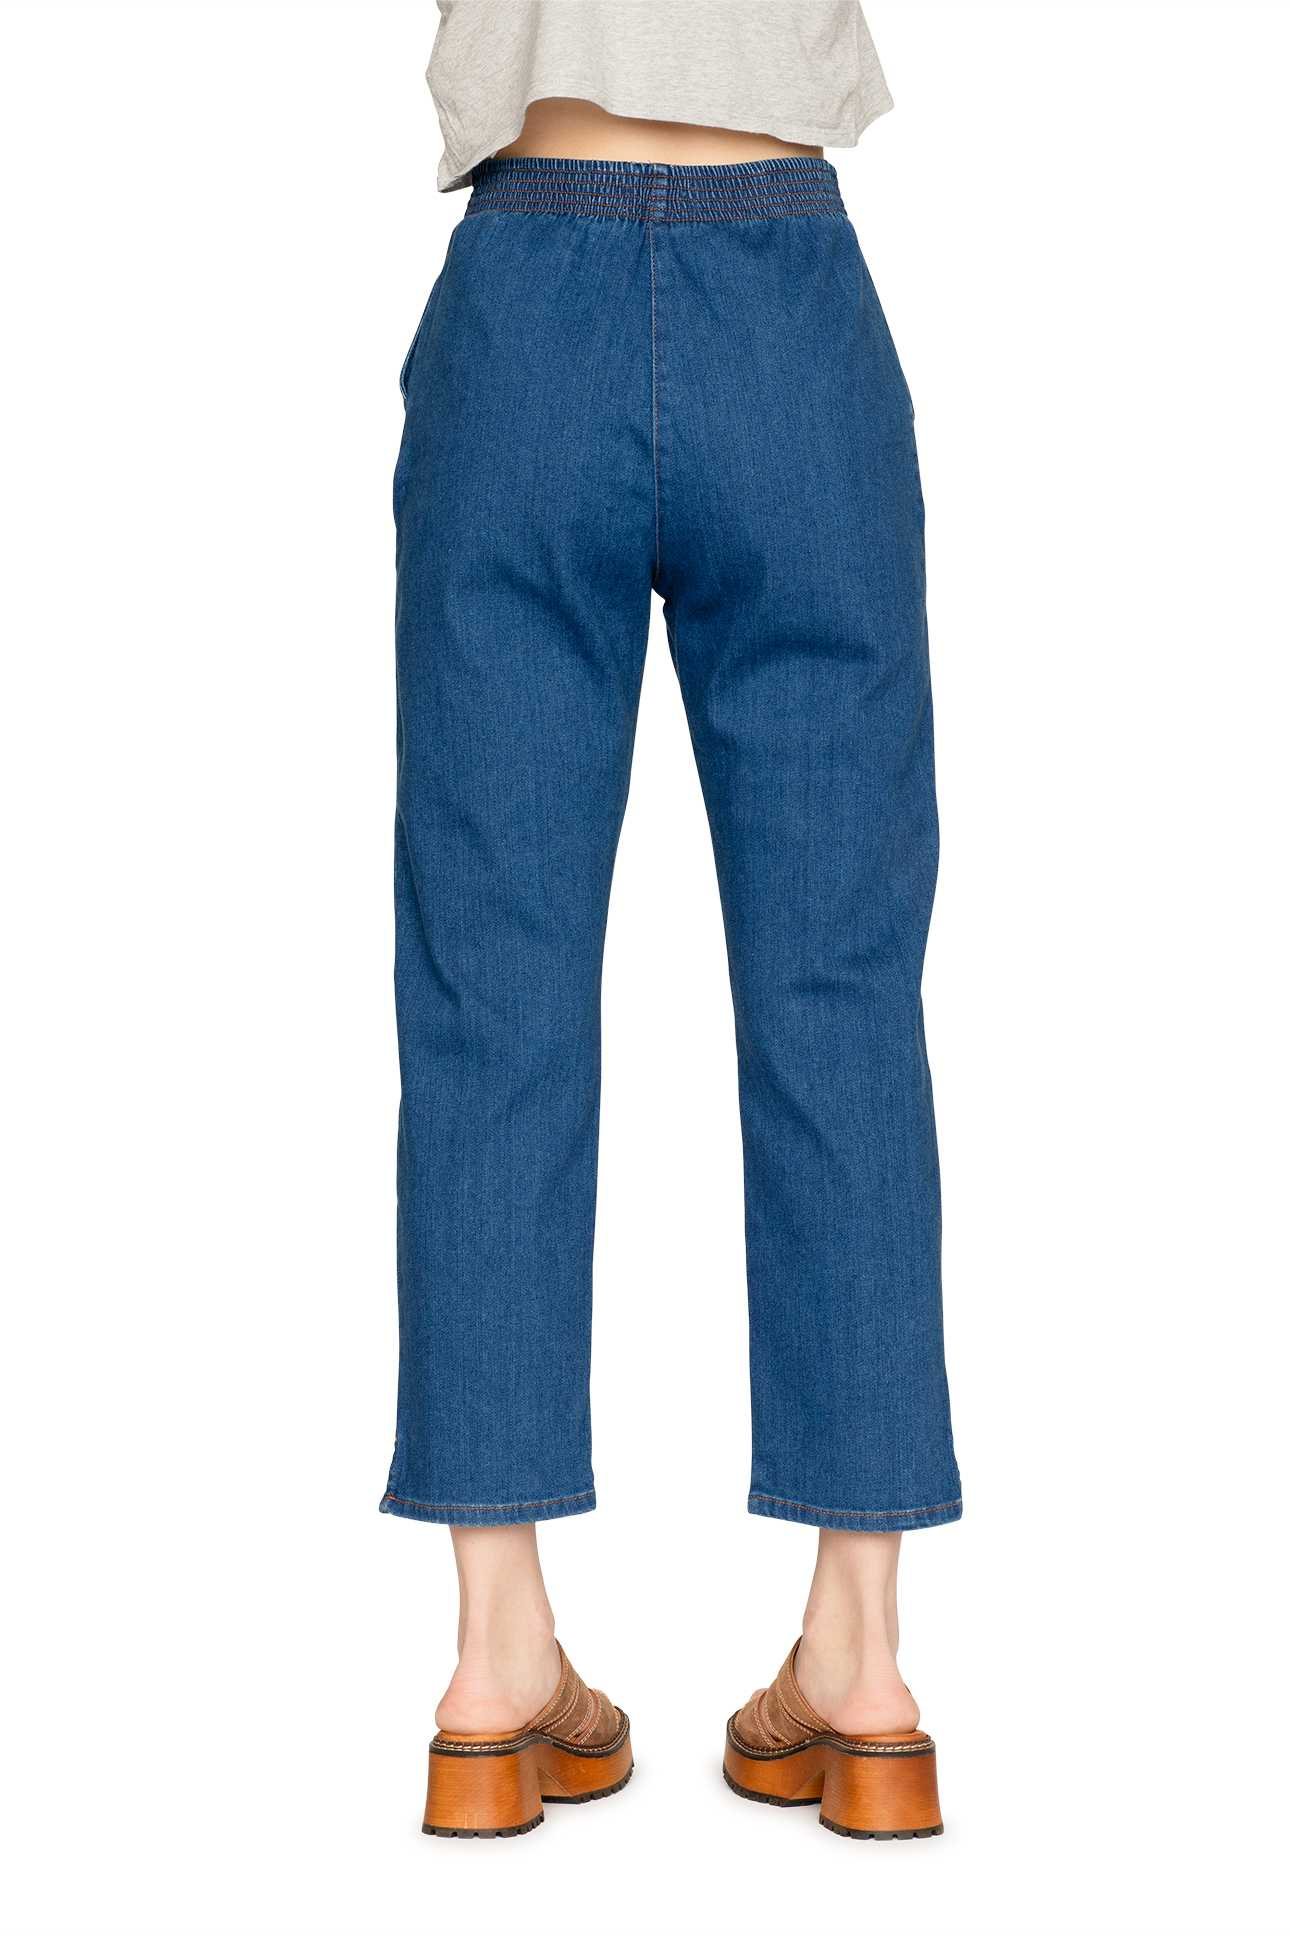 Product image 80's Denim Pant